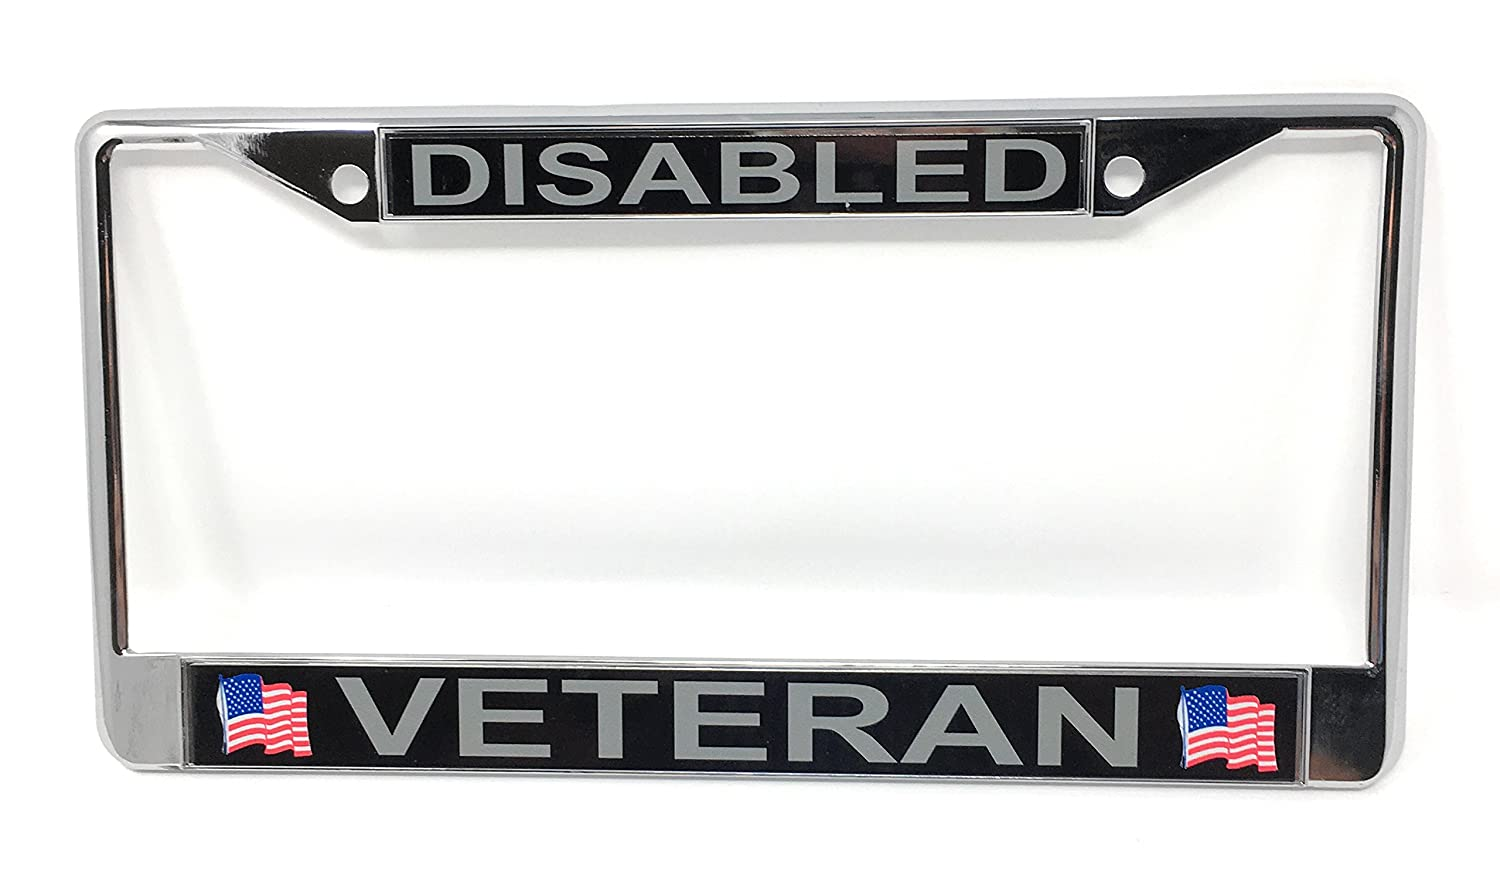 Amazon.com: Disabled Veteran Chrome License Plate Frame: Automotive